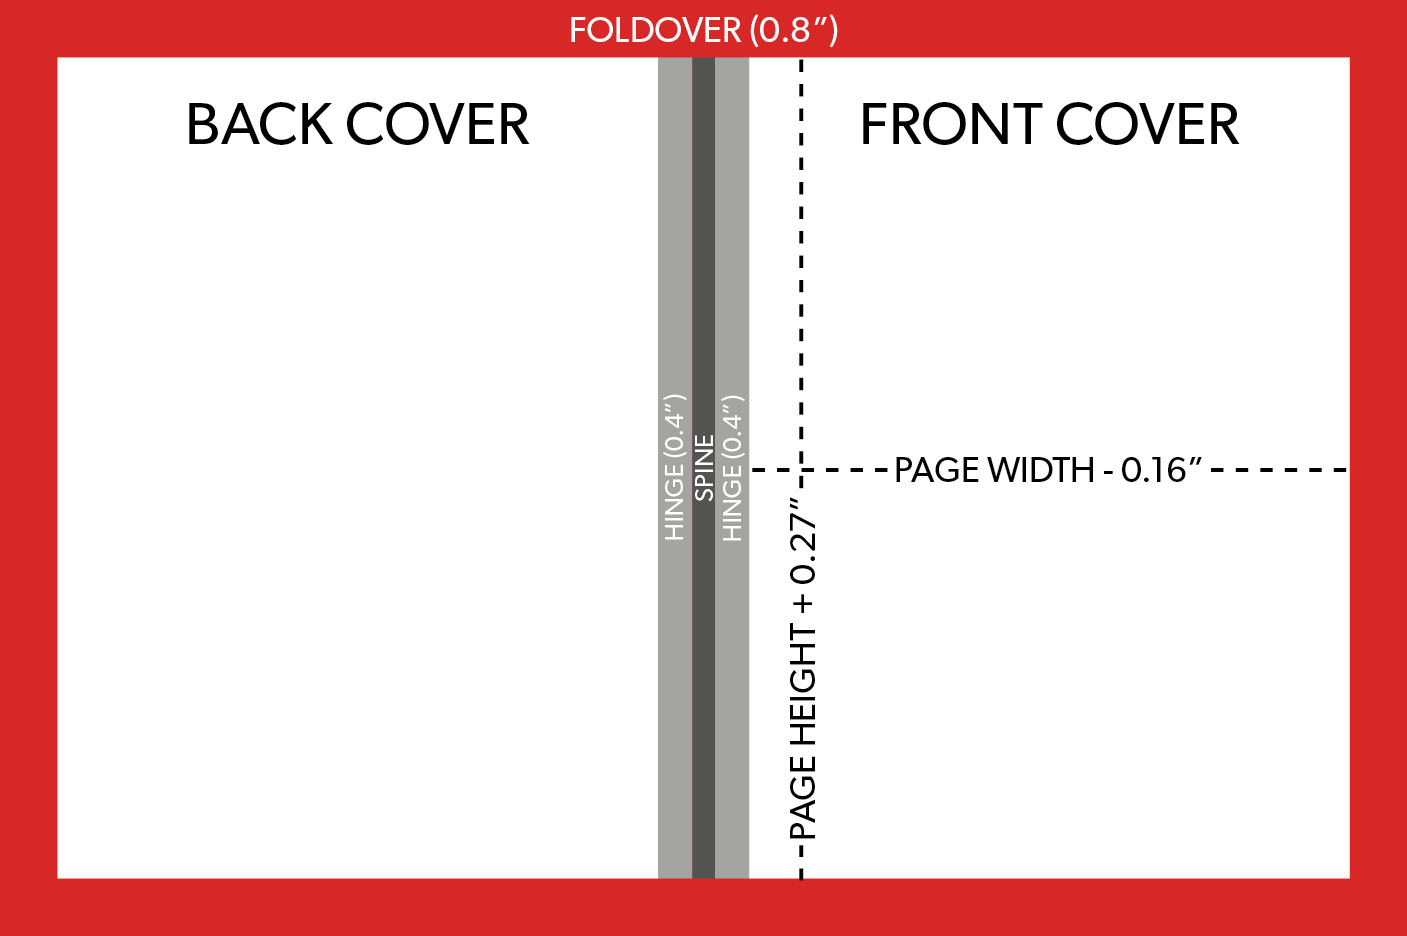 Book Cover Spine Template : Quick hardcover case bound printing setup guide